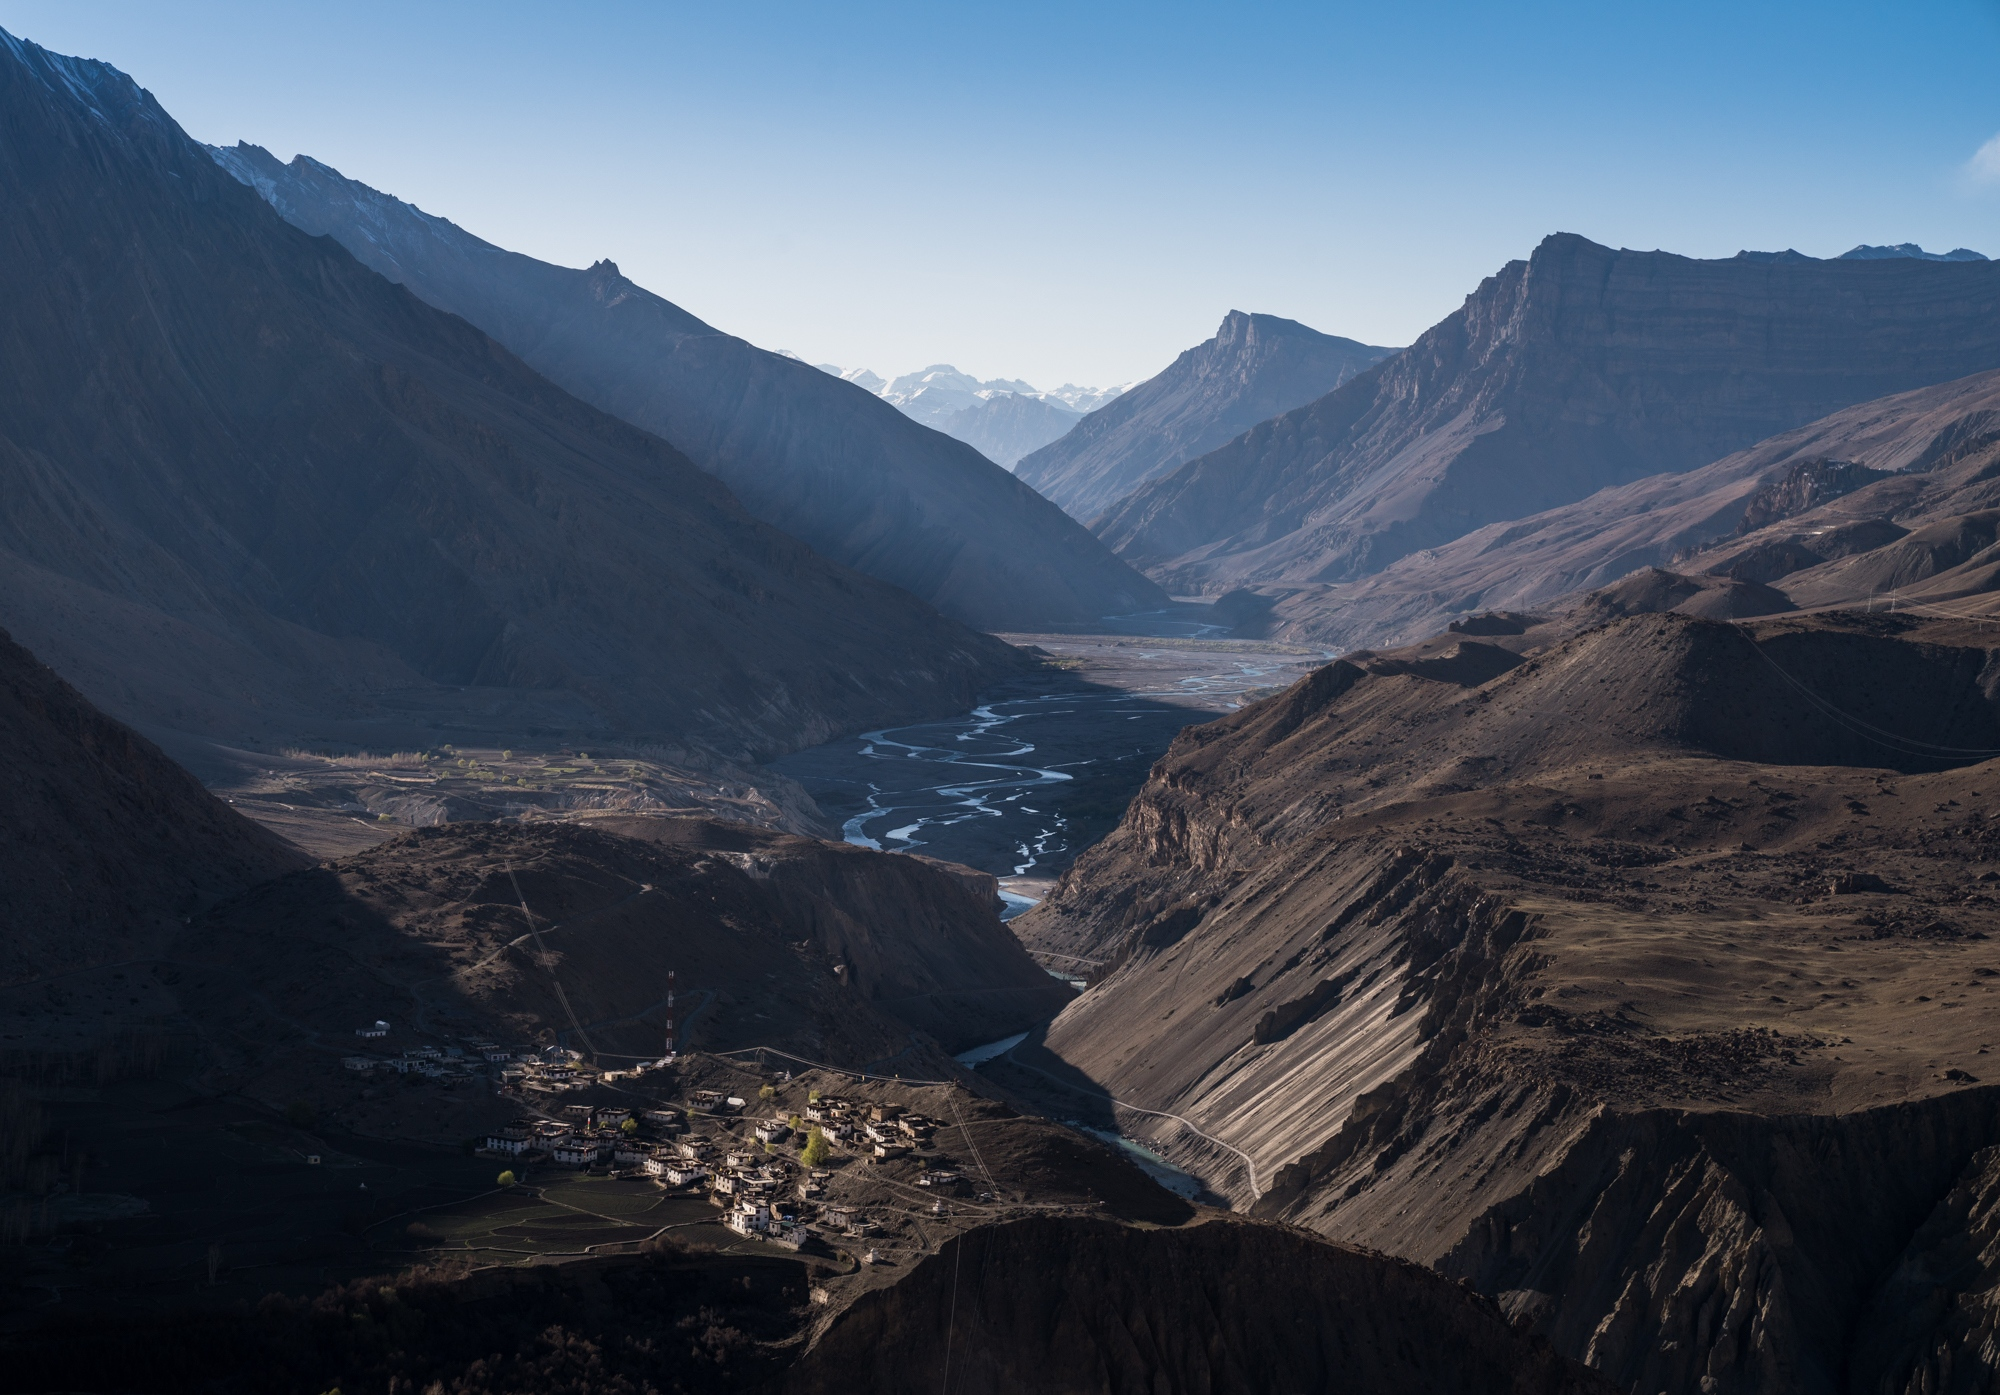 The snaking Spiti River carves its way through on the valley floor originating from the high and remote Himalayan mountain glaciers. This water, connecting with other rivers will eventually reach the flat plains of India.